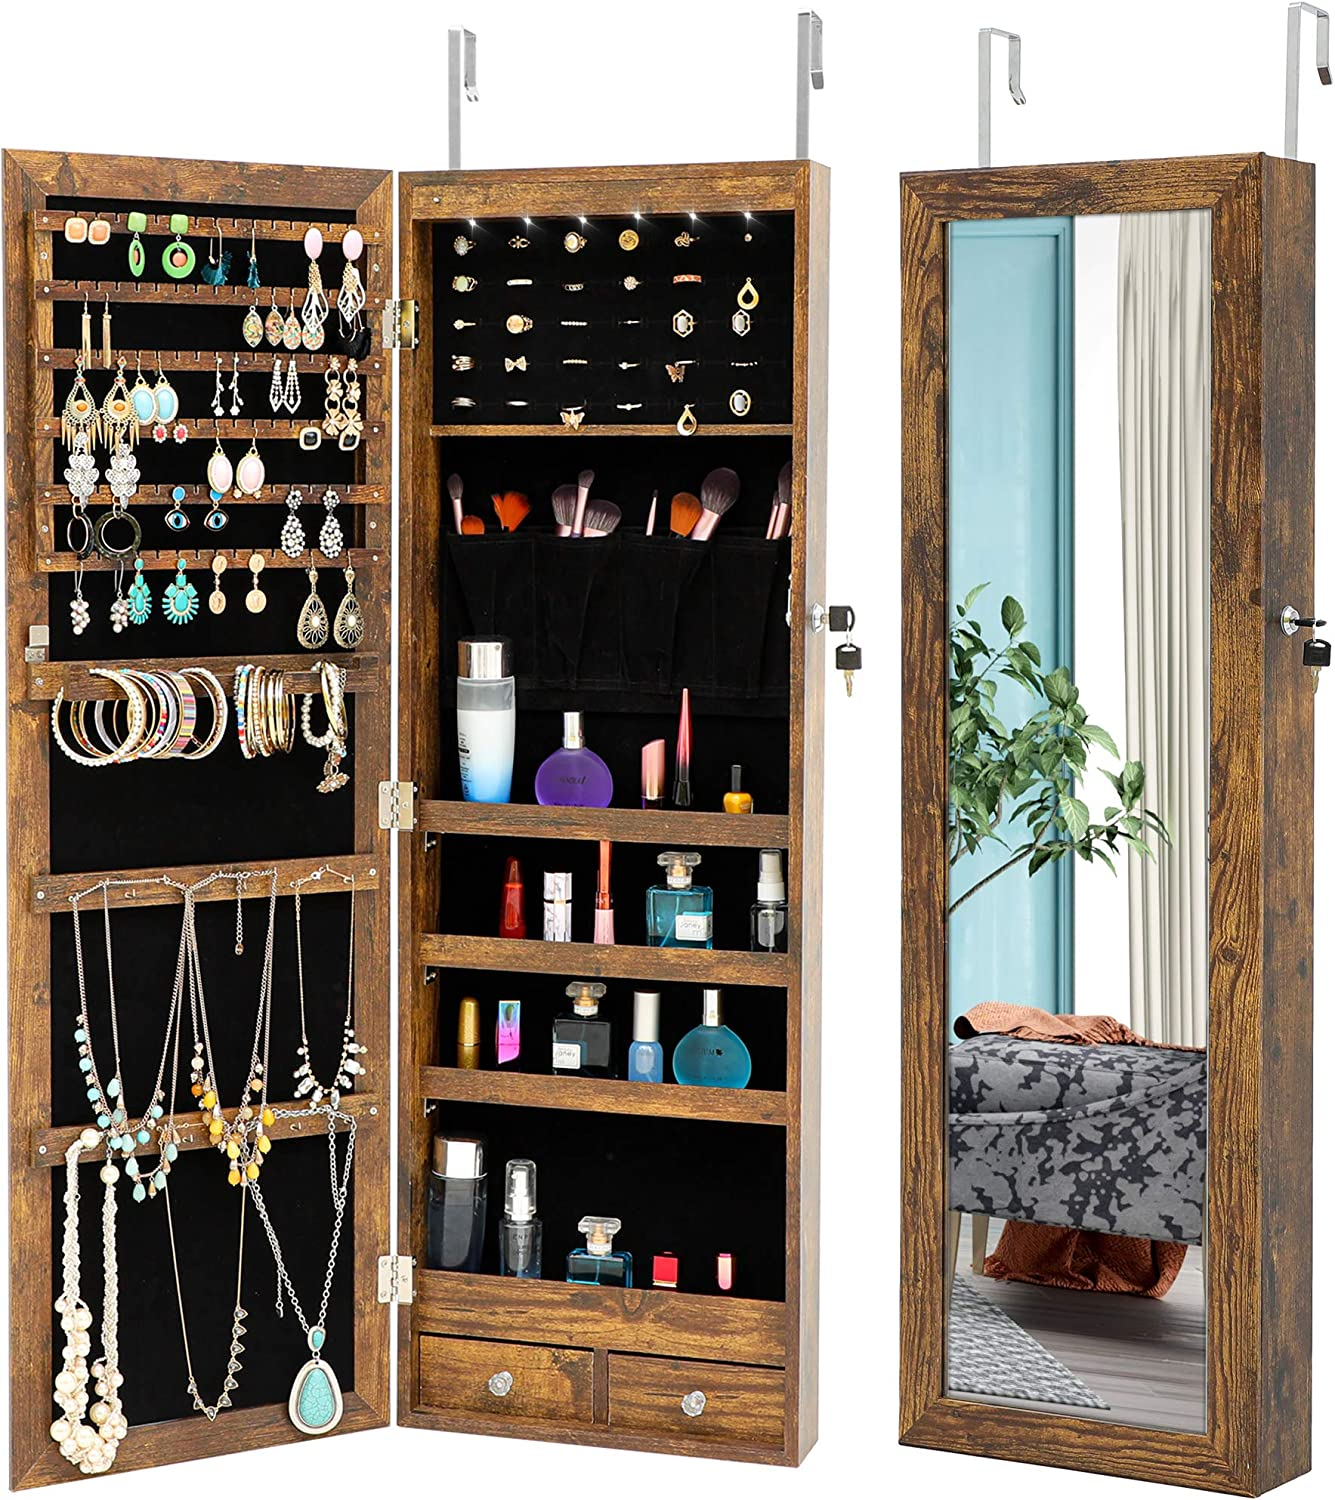 Knowlife Hanging Free shipping anywhere in the nation Jewelry Organizer Armorie Full At the price length with Mirr